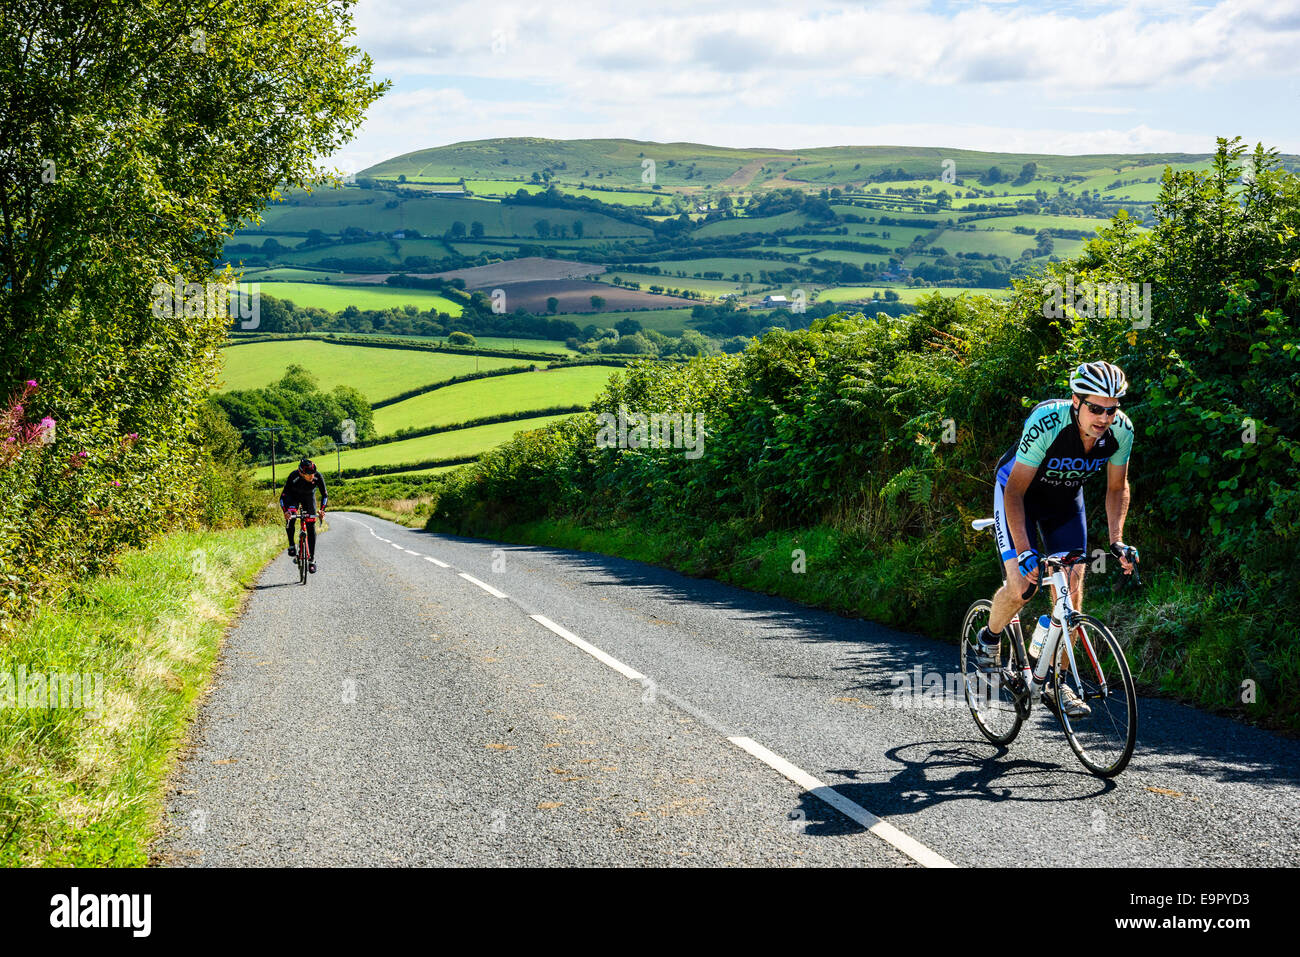 Cyclists climbing a hill on the B4594 Powys Wales - Stock Image